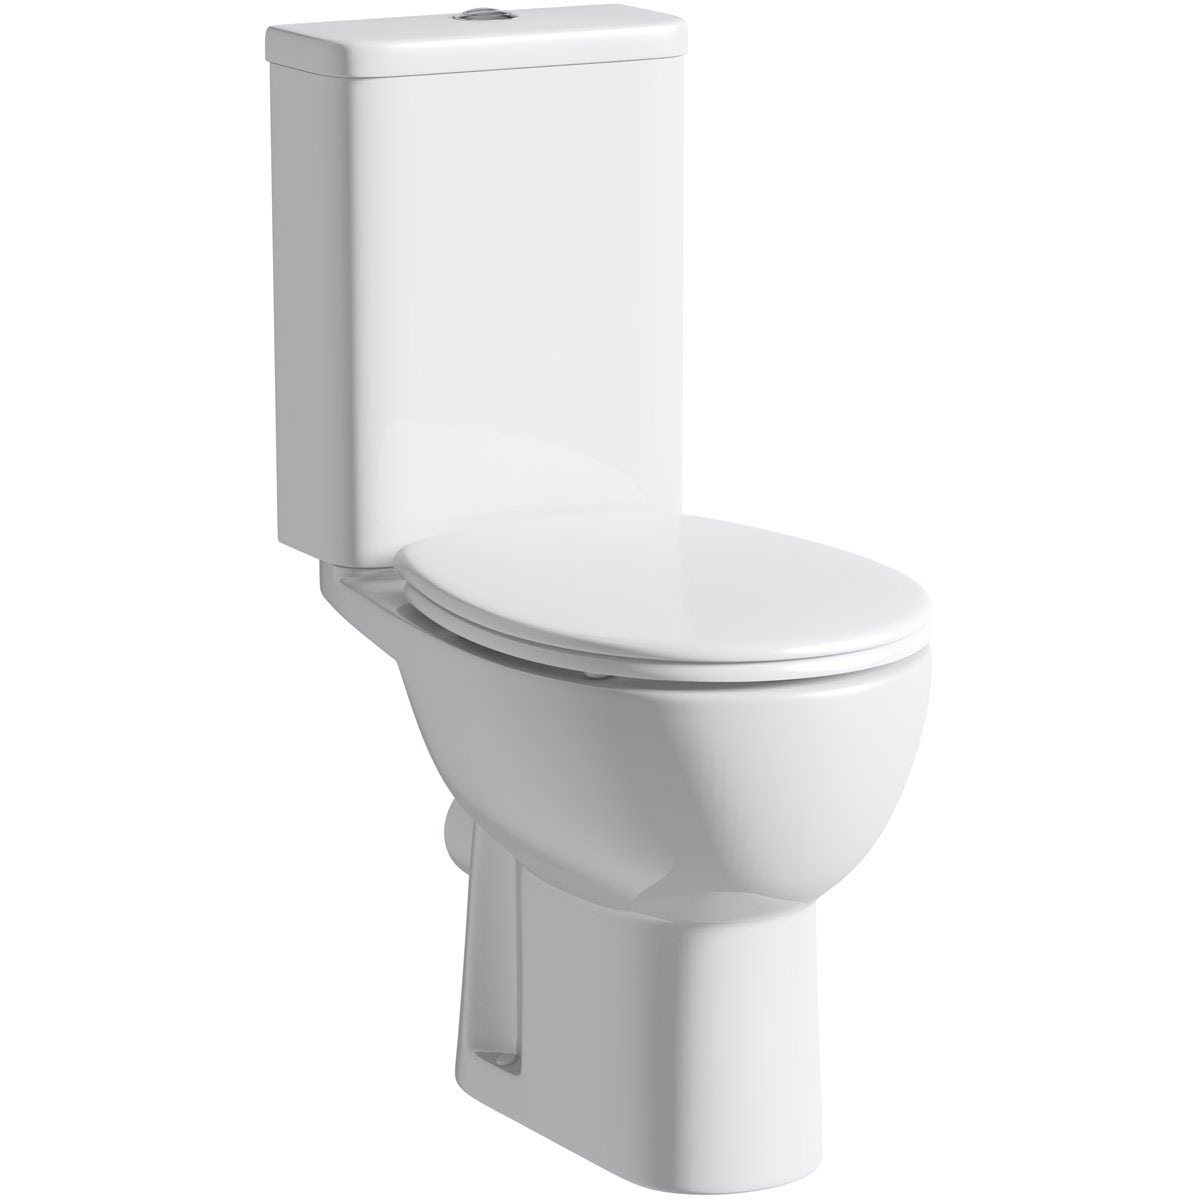 Orchard Elena close coupled toilet with soft close seat